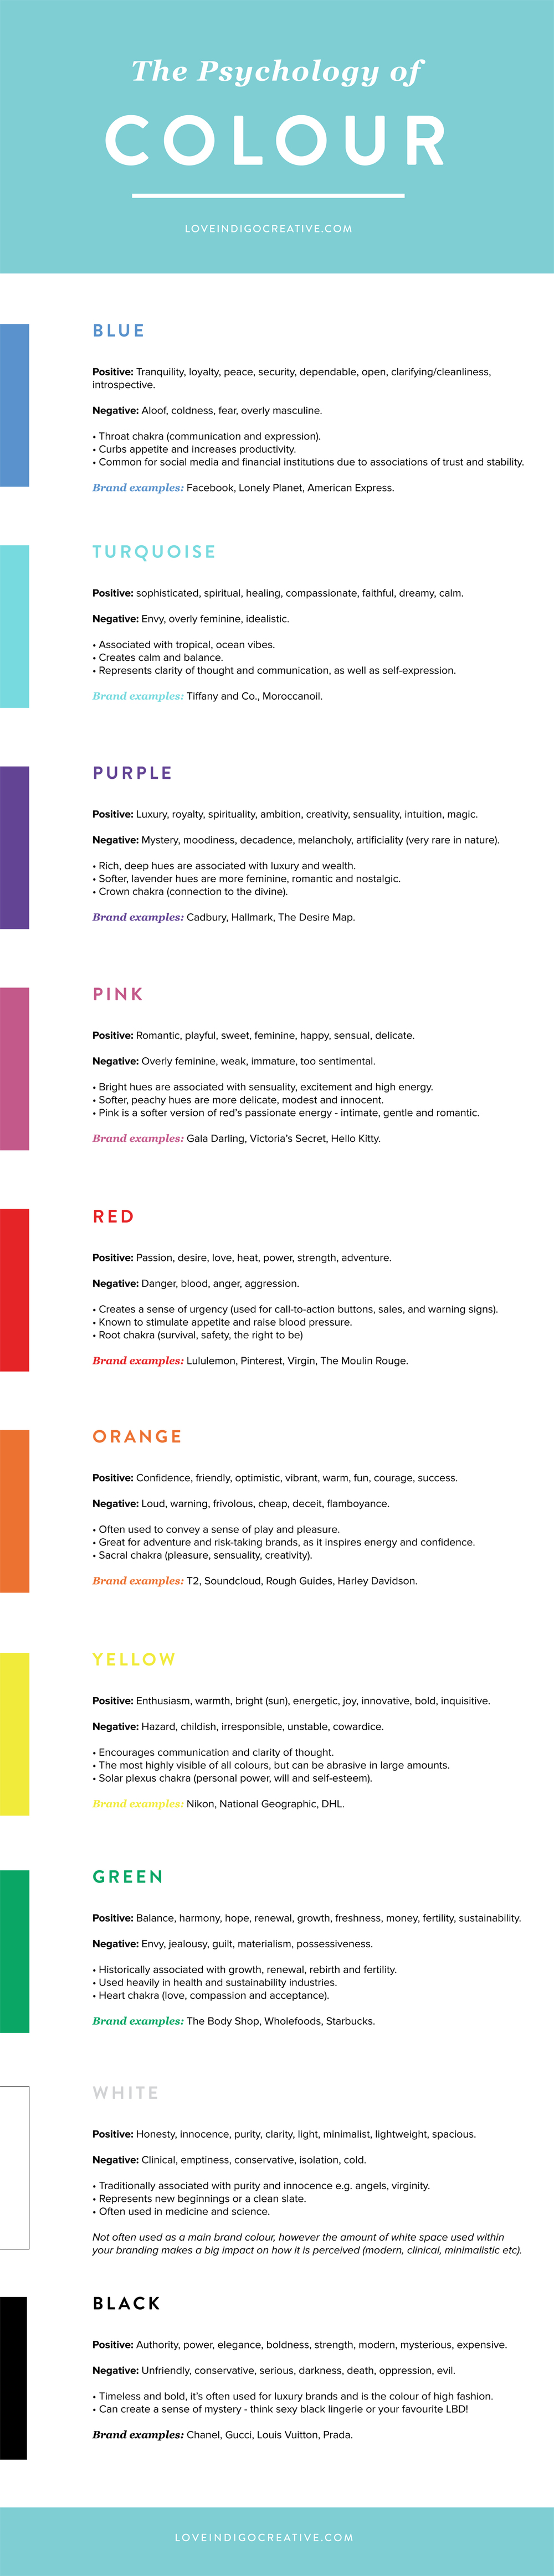 What is Your Colour Palette Saying About Your Brand? | Love Indigo Creative